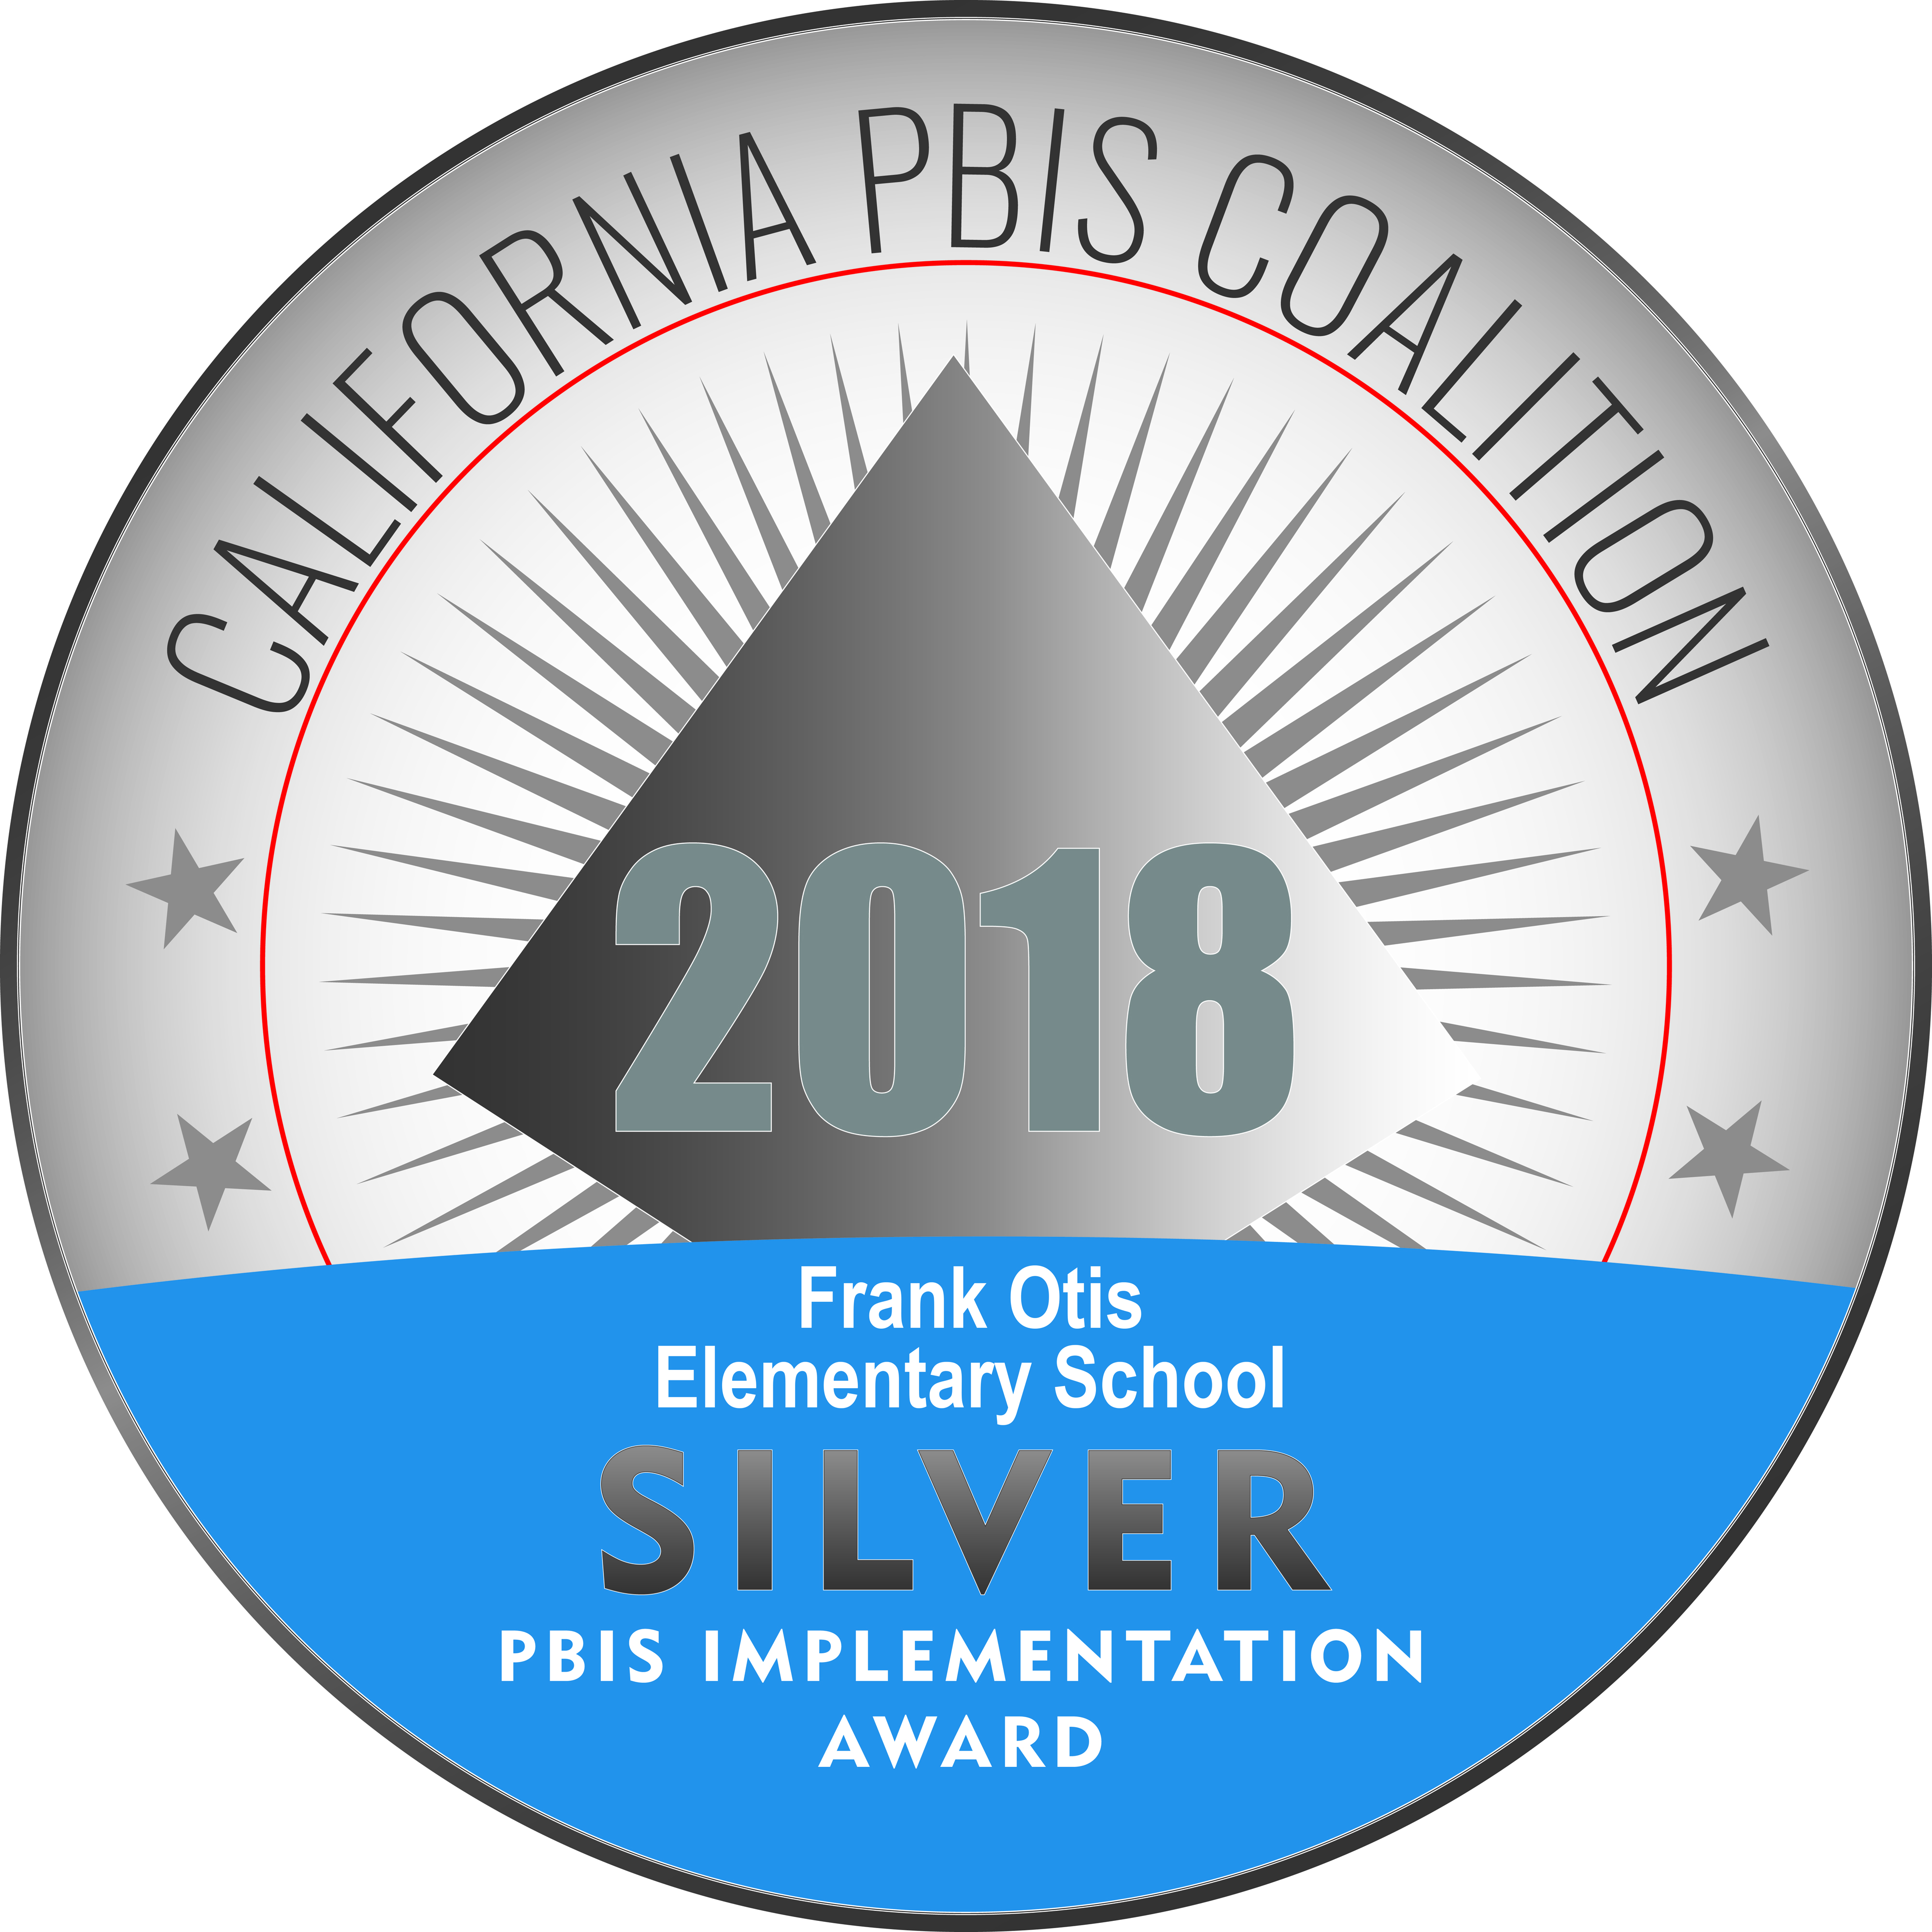 California PBIS coalition 2018